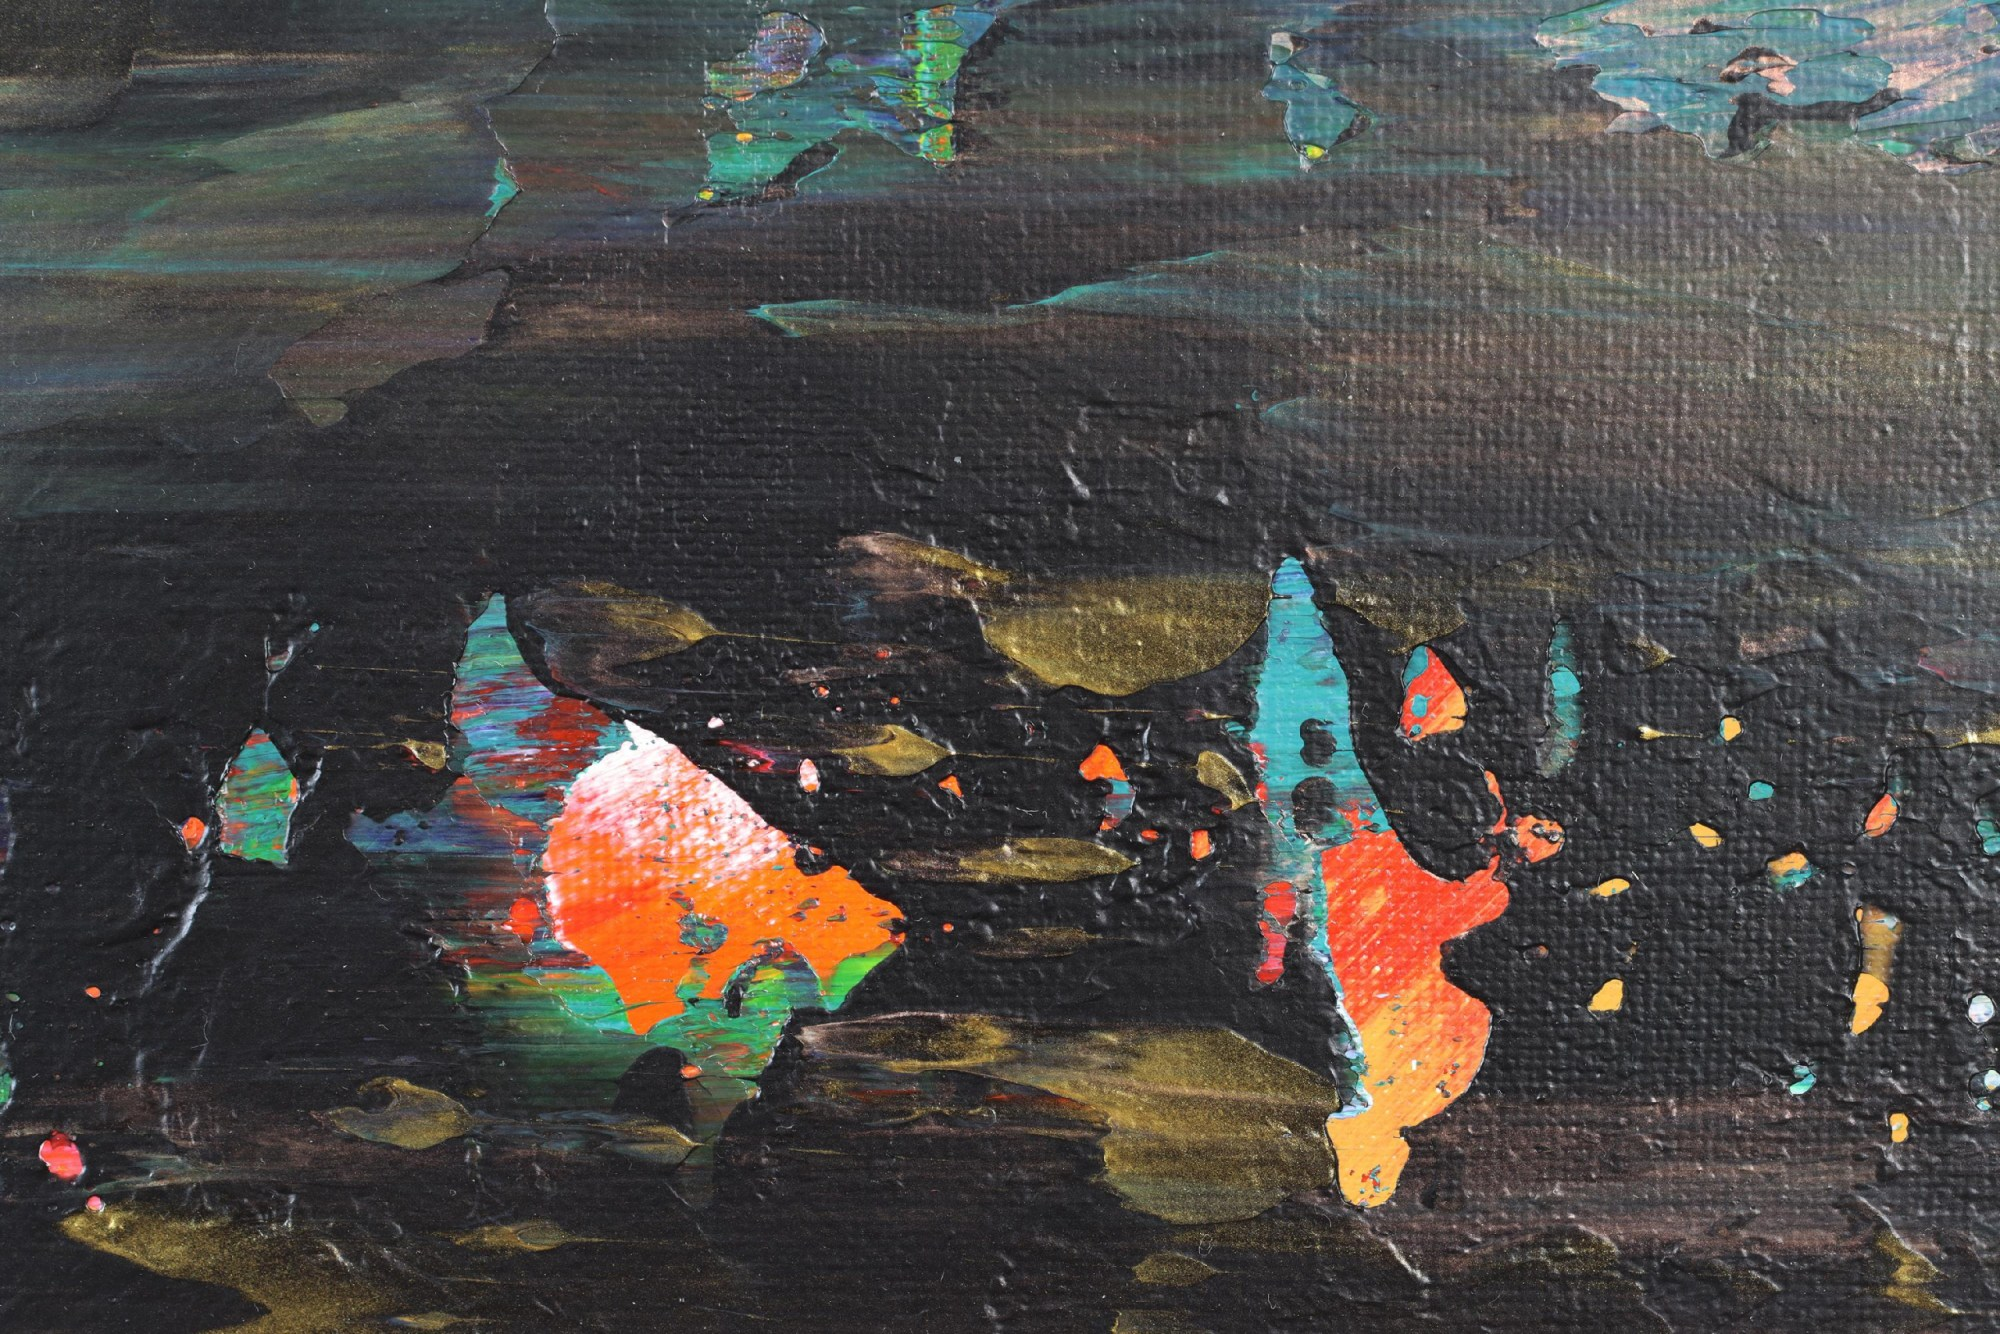 Detail / Nocturn Panorama 7 (2021) 18x24 inches / Los Angeles